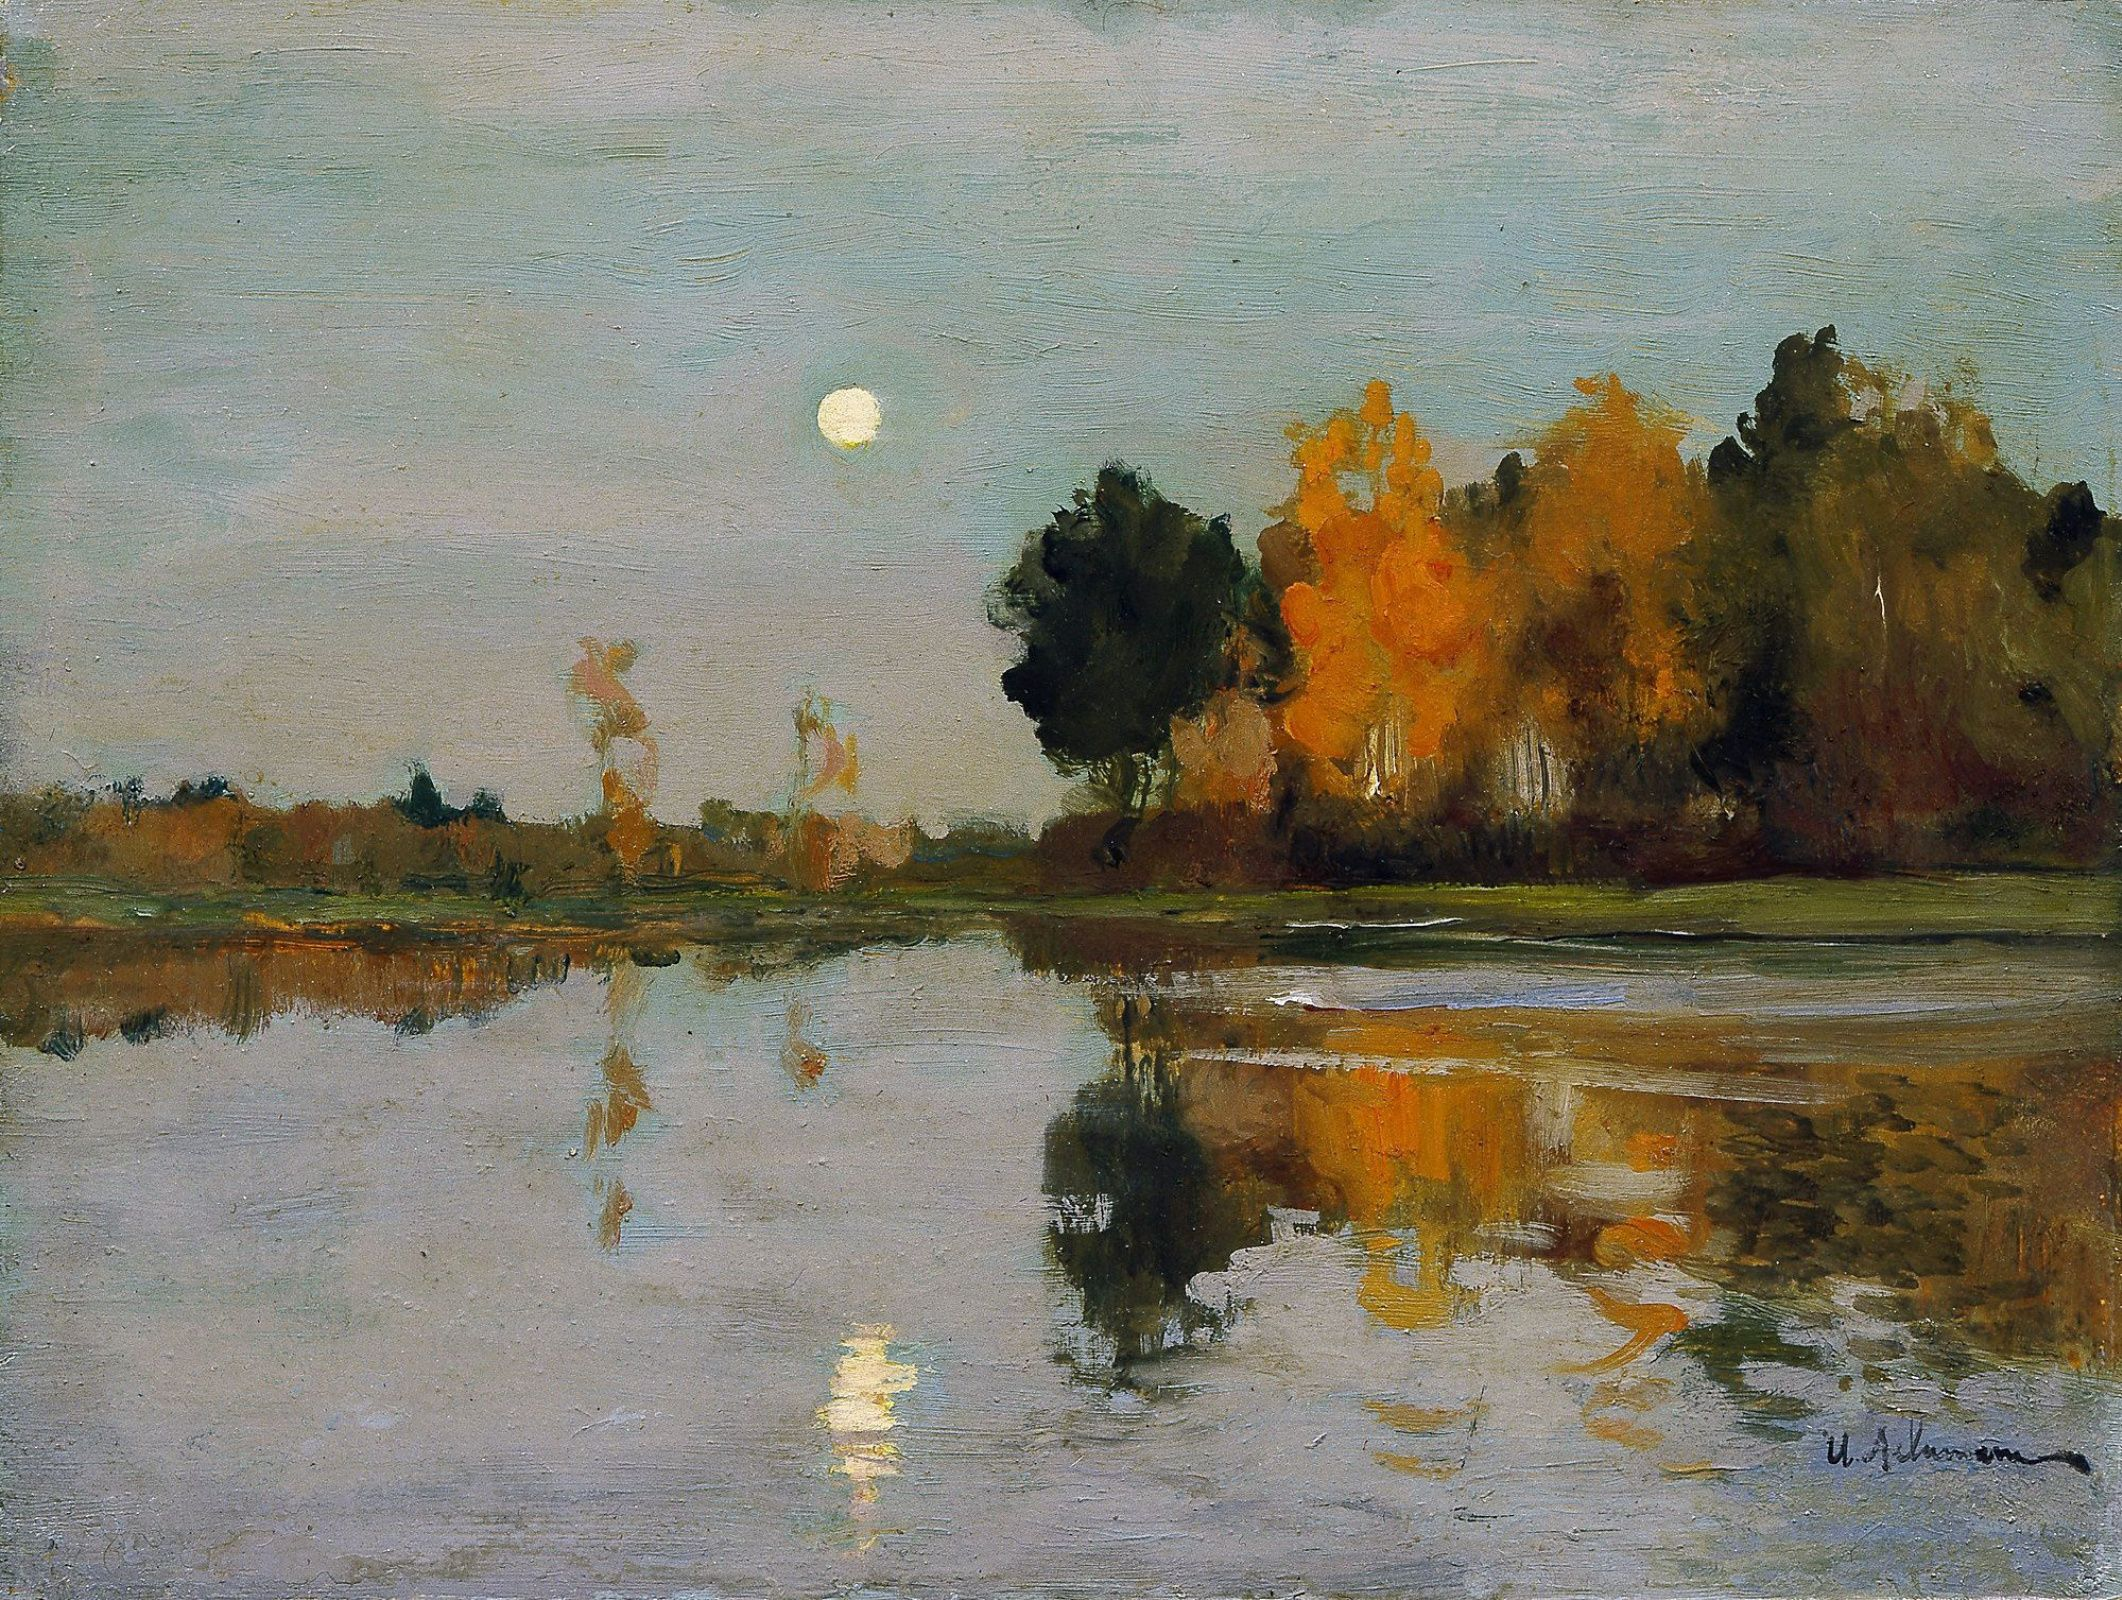 130 Colley Whisson and Others ideas in 2021 | landscape paintings,  landscape art, art painting